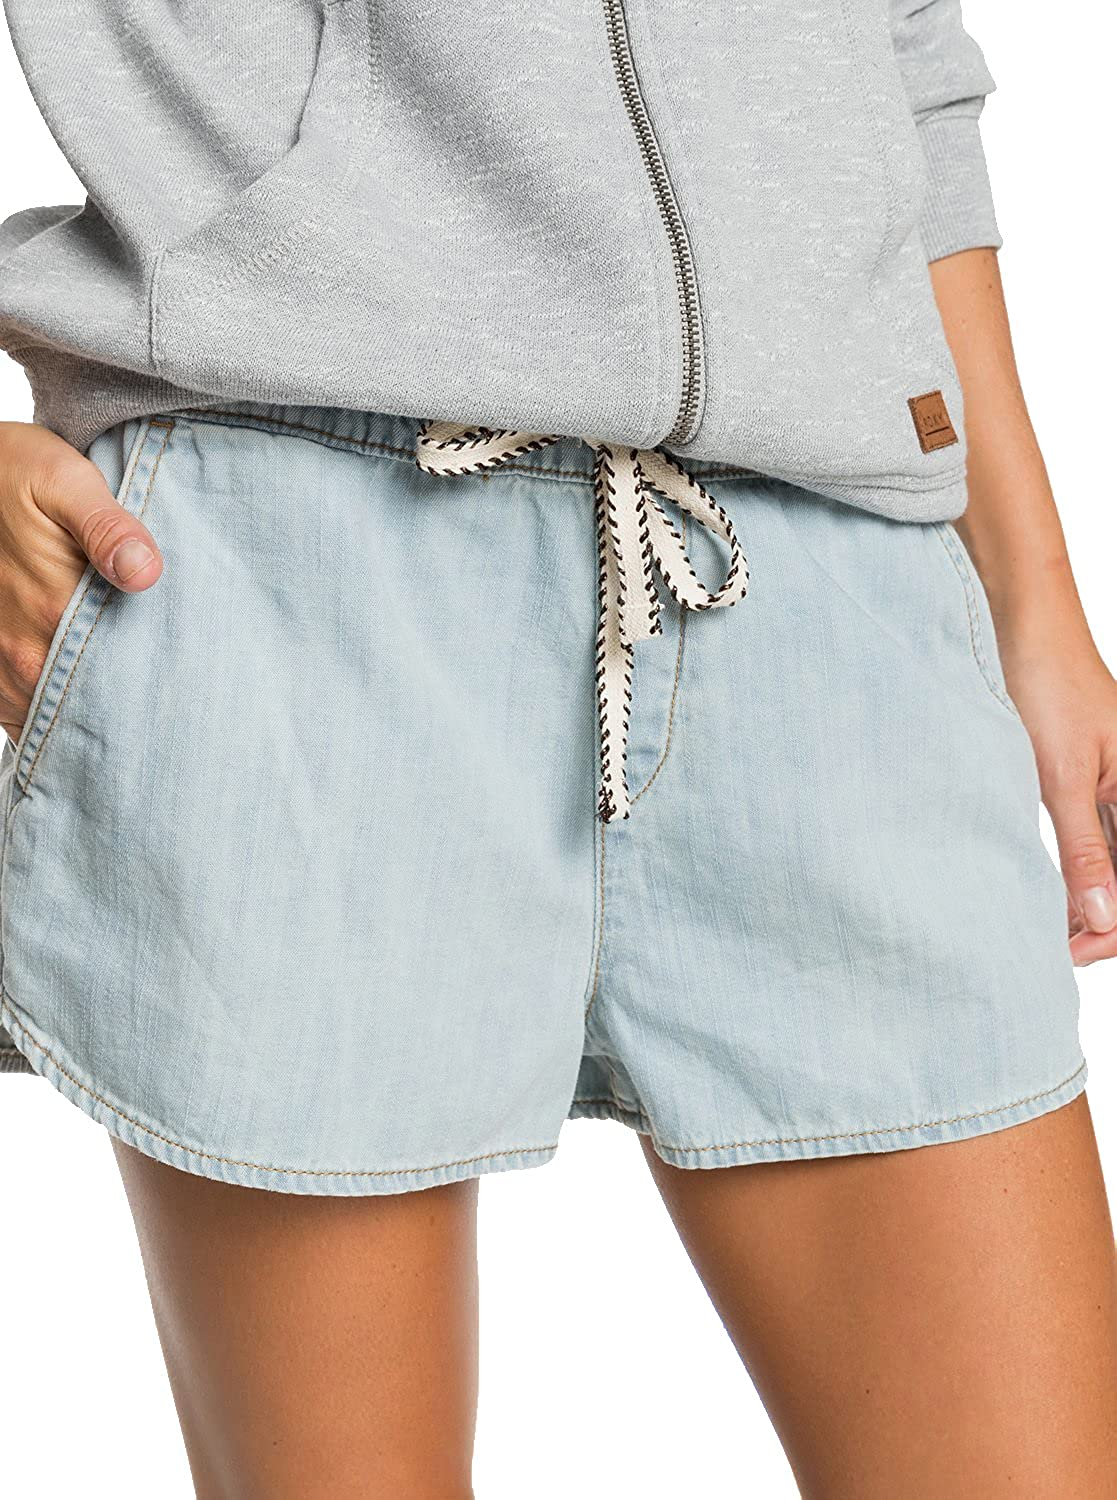 Roxy Back to Beach Cash special Mail order price Shorts The